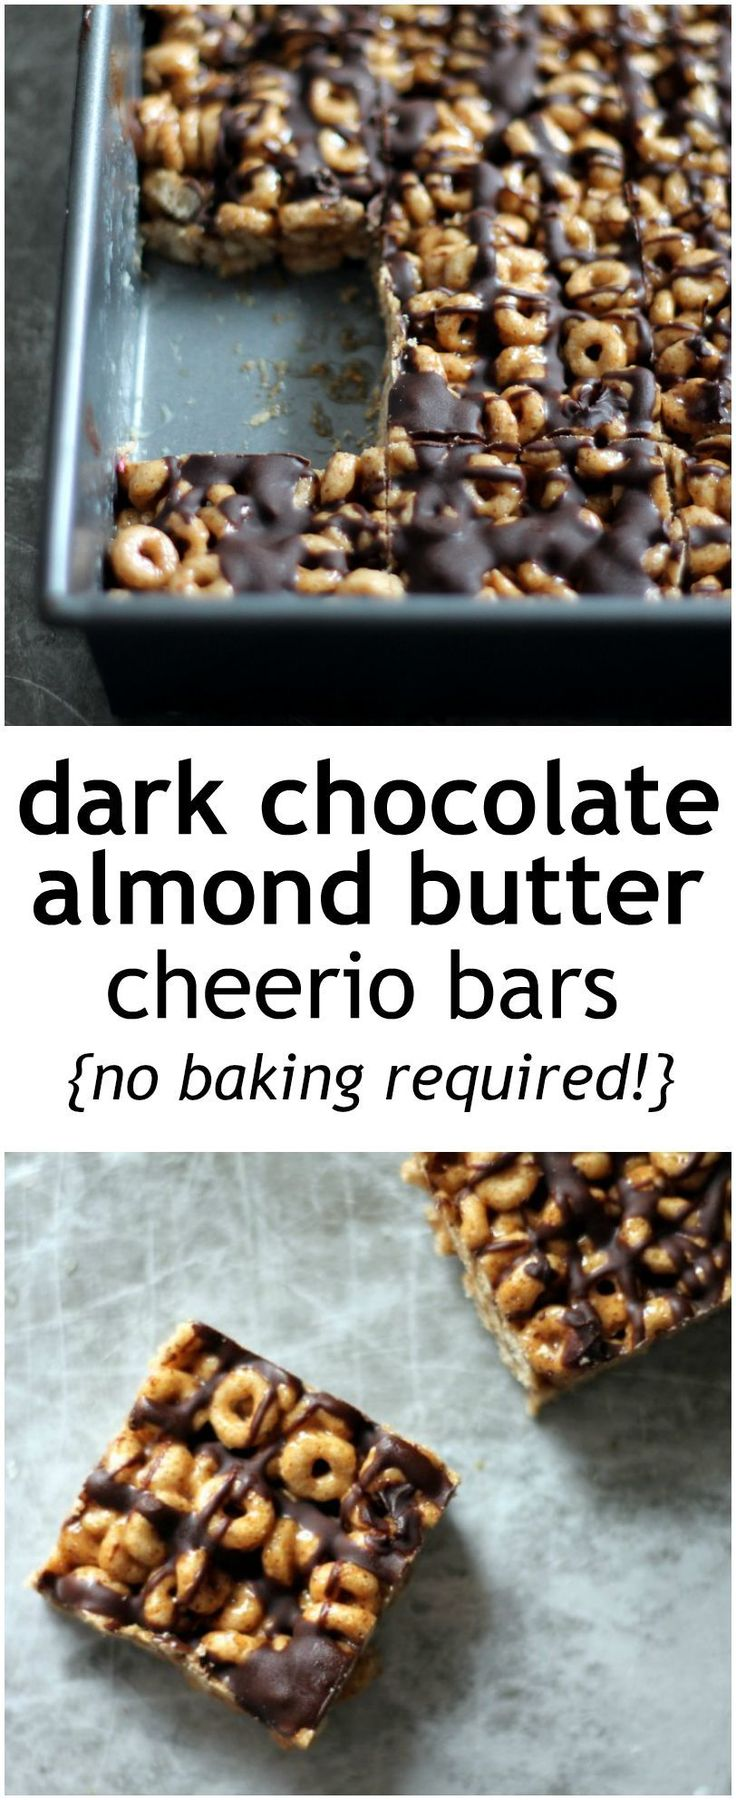 Easy, no-bake cheerios bars made with natural almond butter and honey. The dark chocolate drizzle makes it extra special!